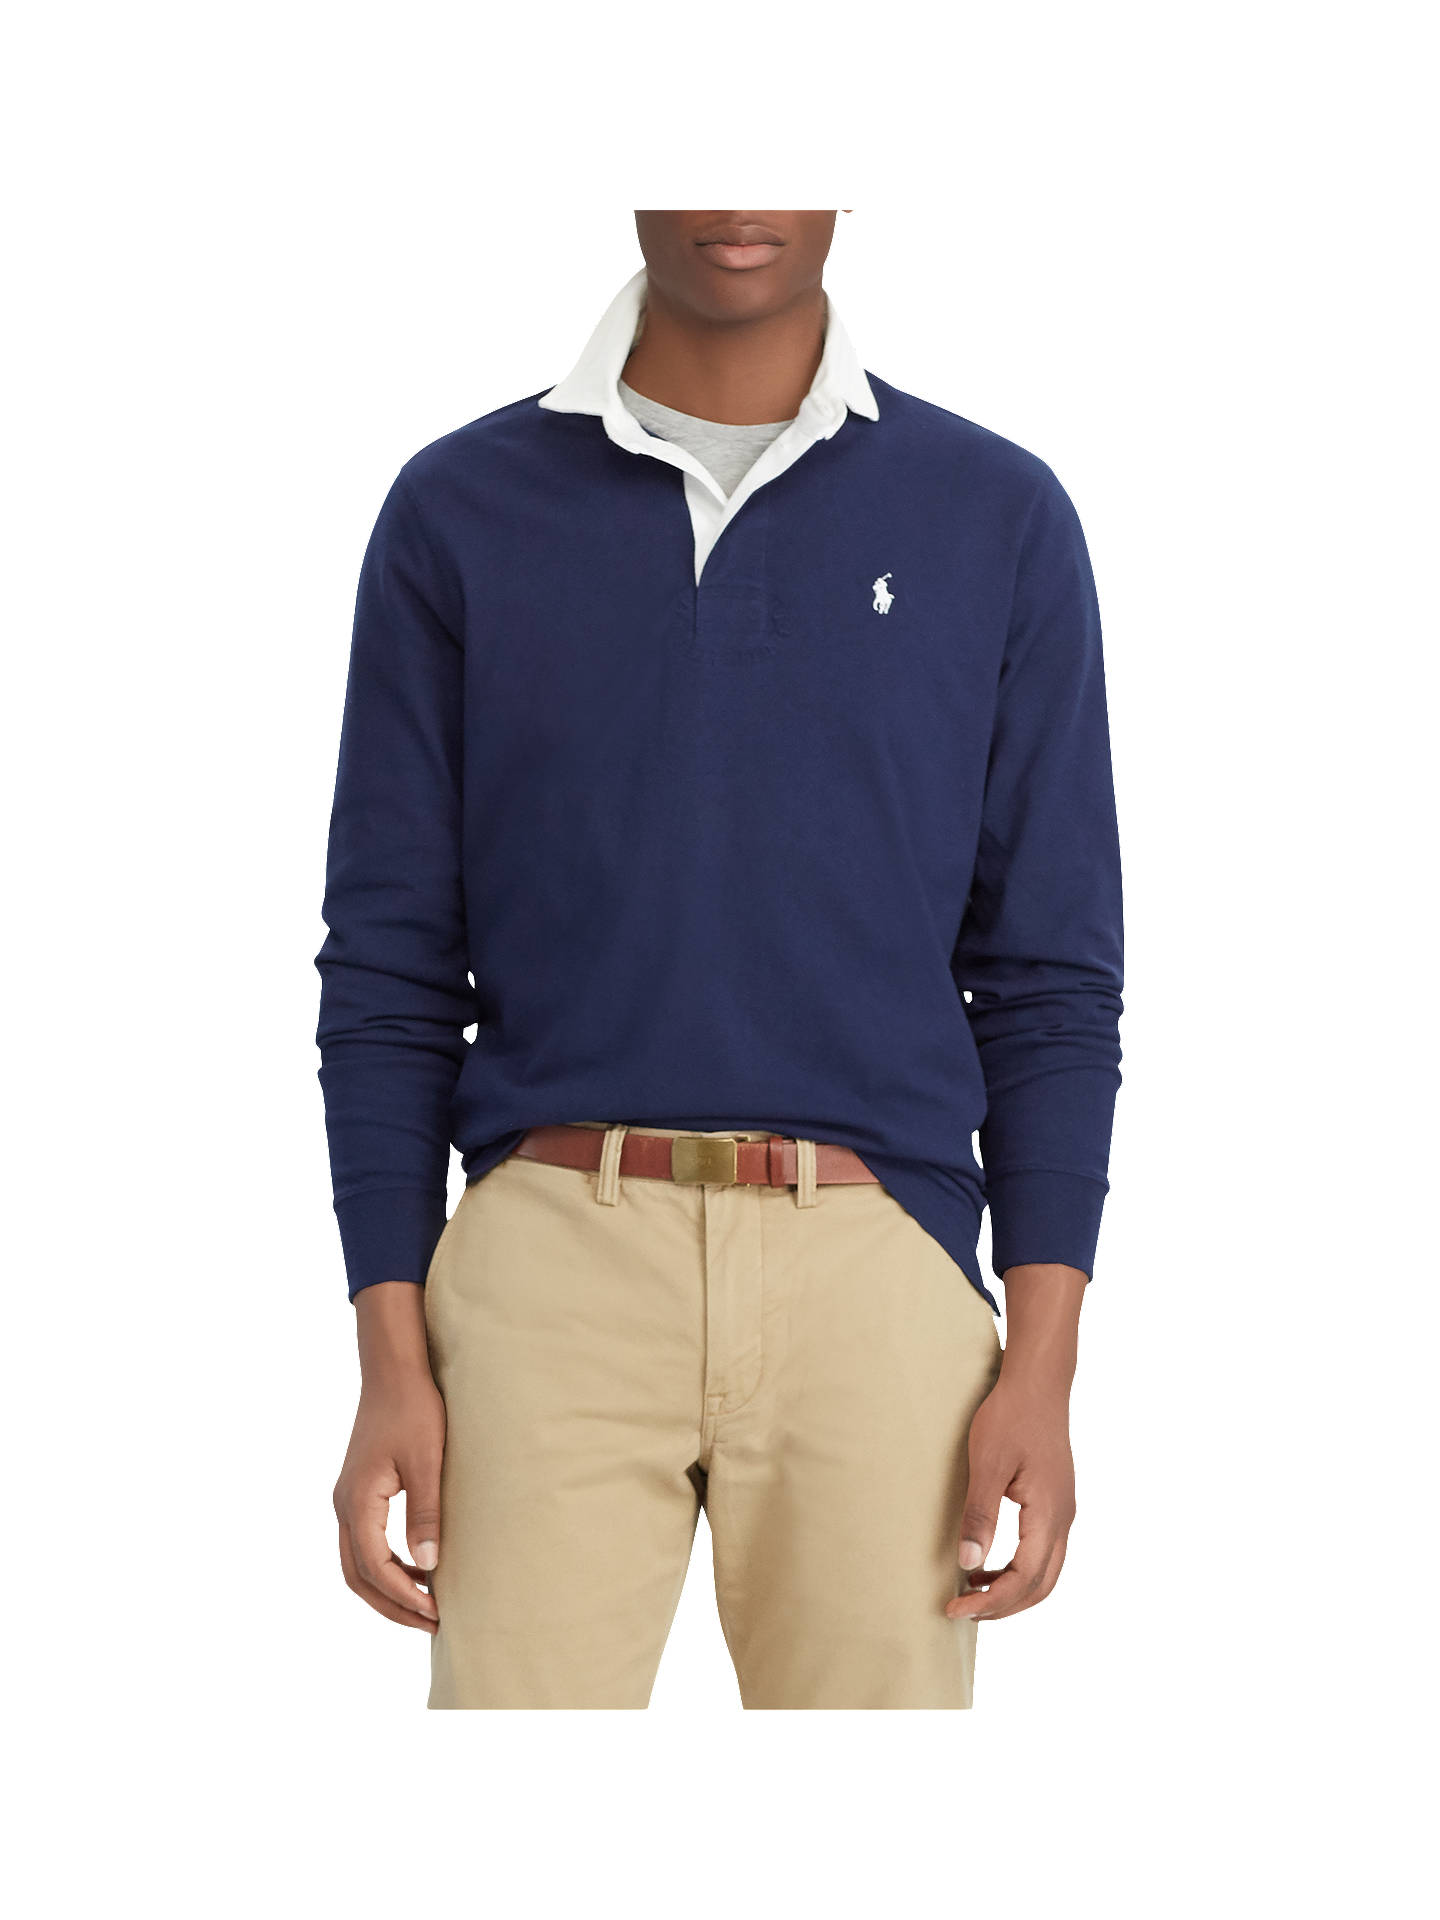 a5482ed6a7c Buy Polo Ralph Lauren Long Sleeve Rugby Shirt, Newport Navy, M Online at  johnlewis ...